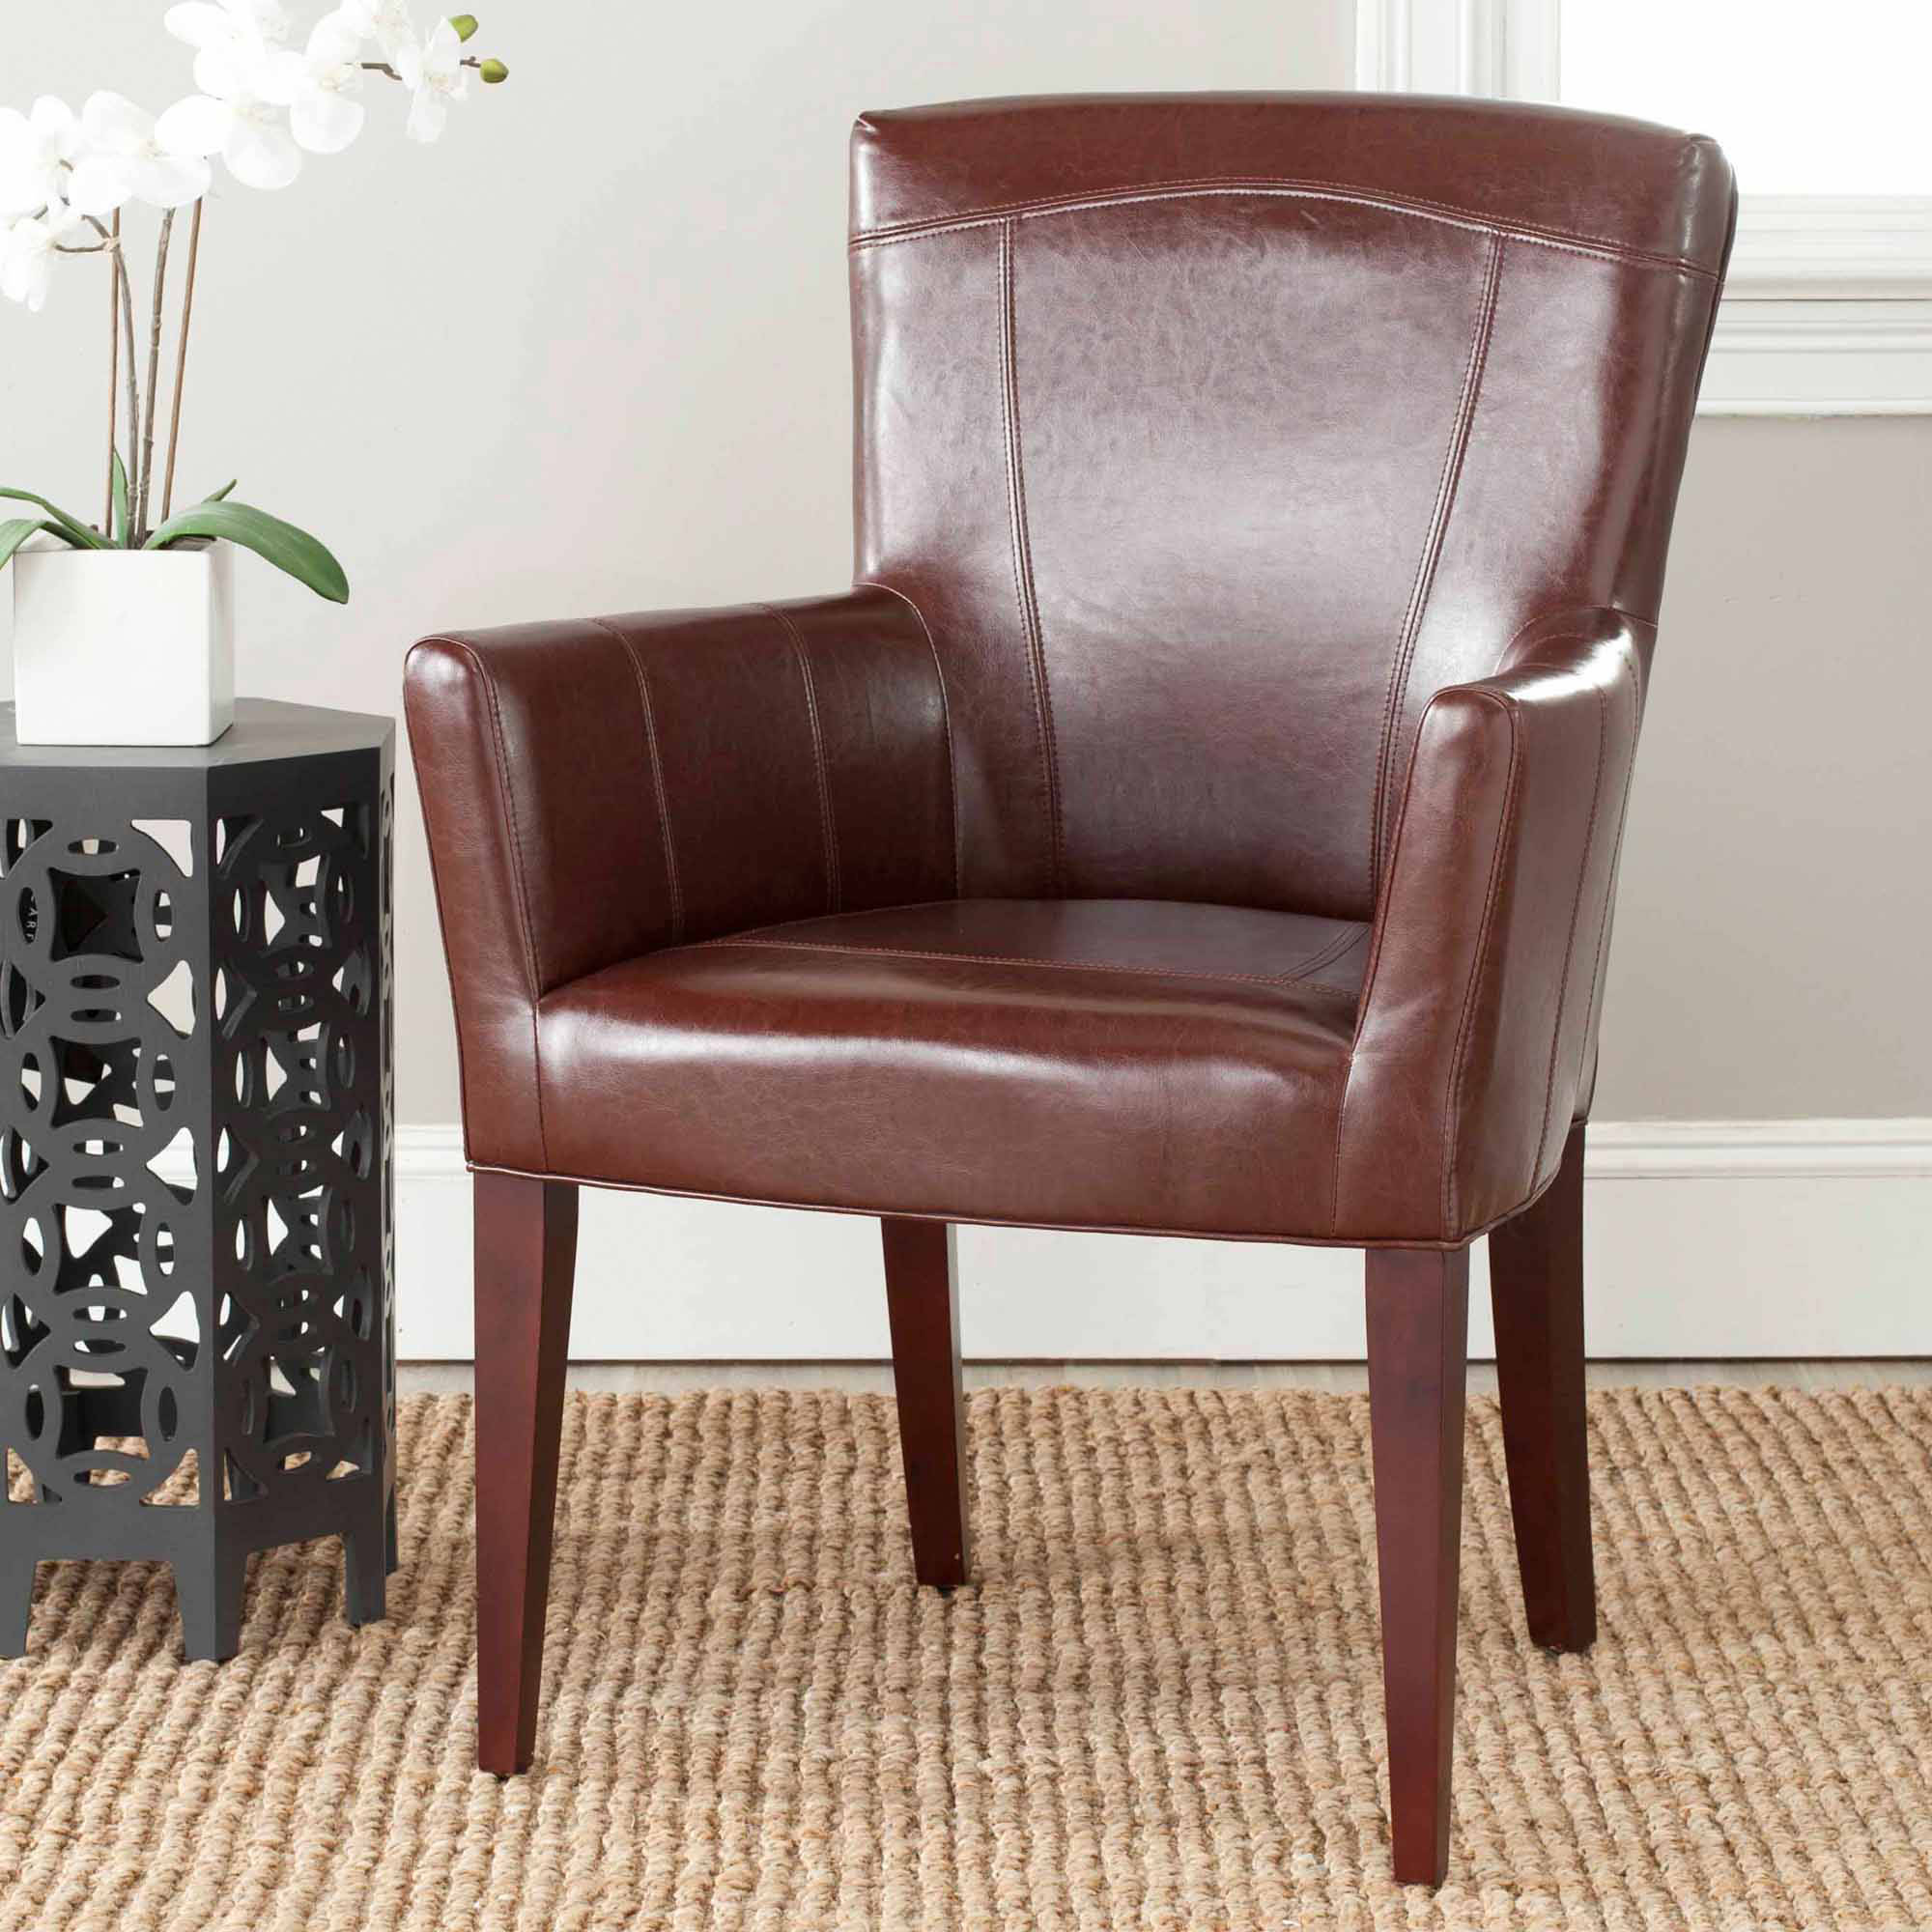 Safavieh Dale Bicast Leather Arm Chair, Multiple Colors